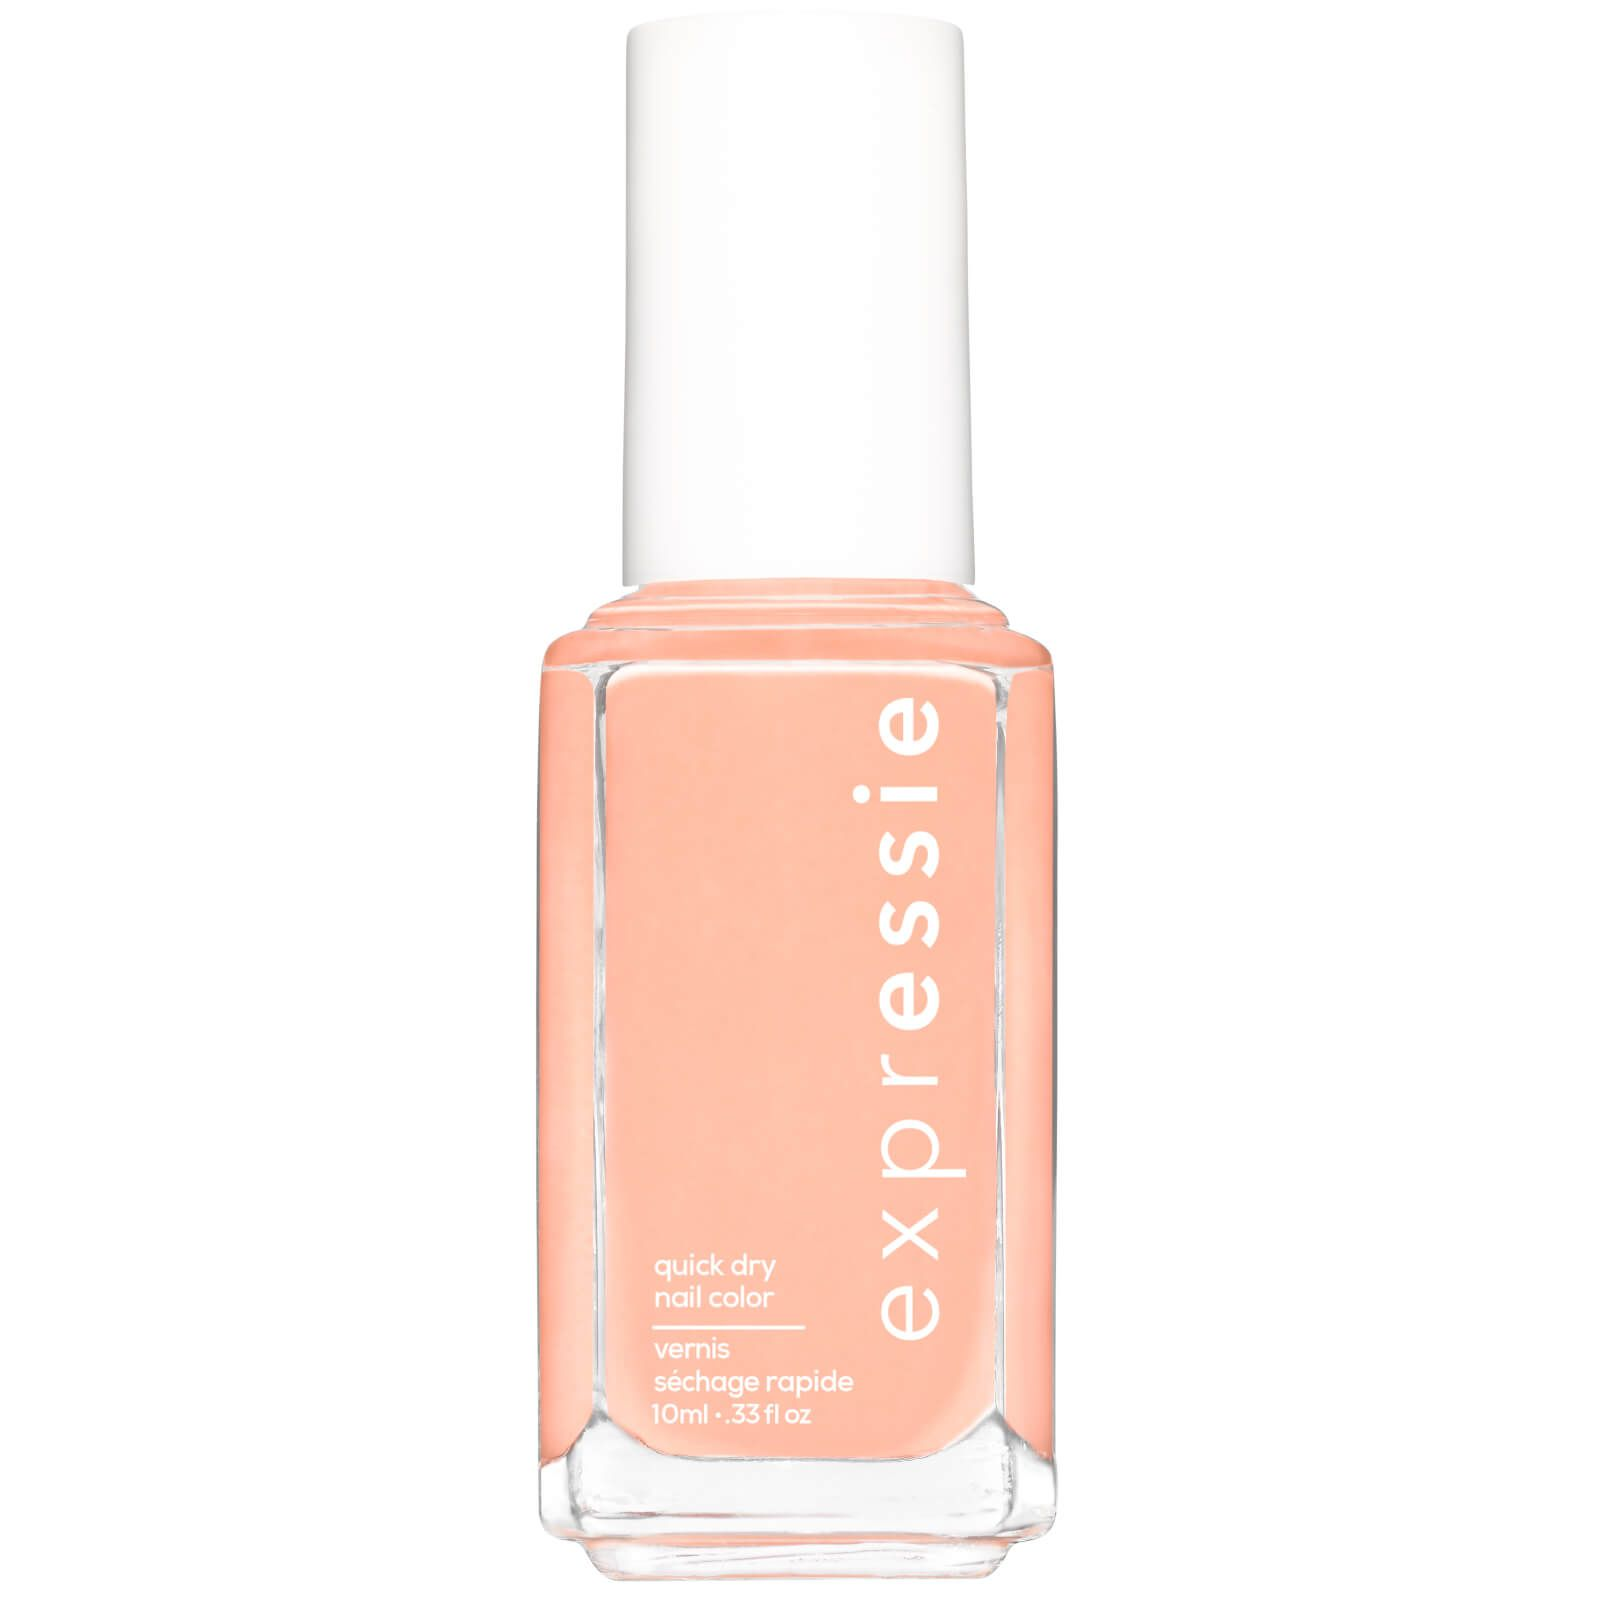 My Celebrity Life – Essie Expressie Quick Dry Formula Chip Resistant Nail Polish in All Things OOO